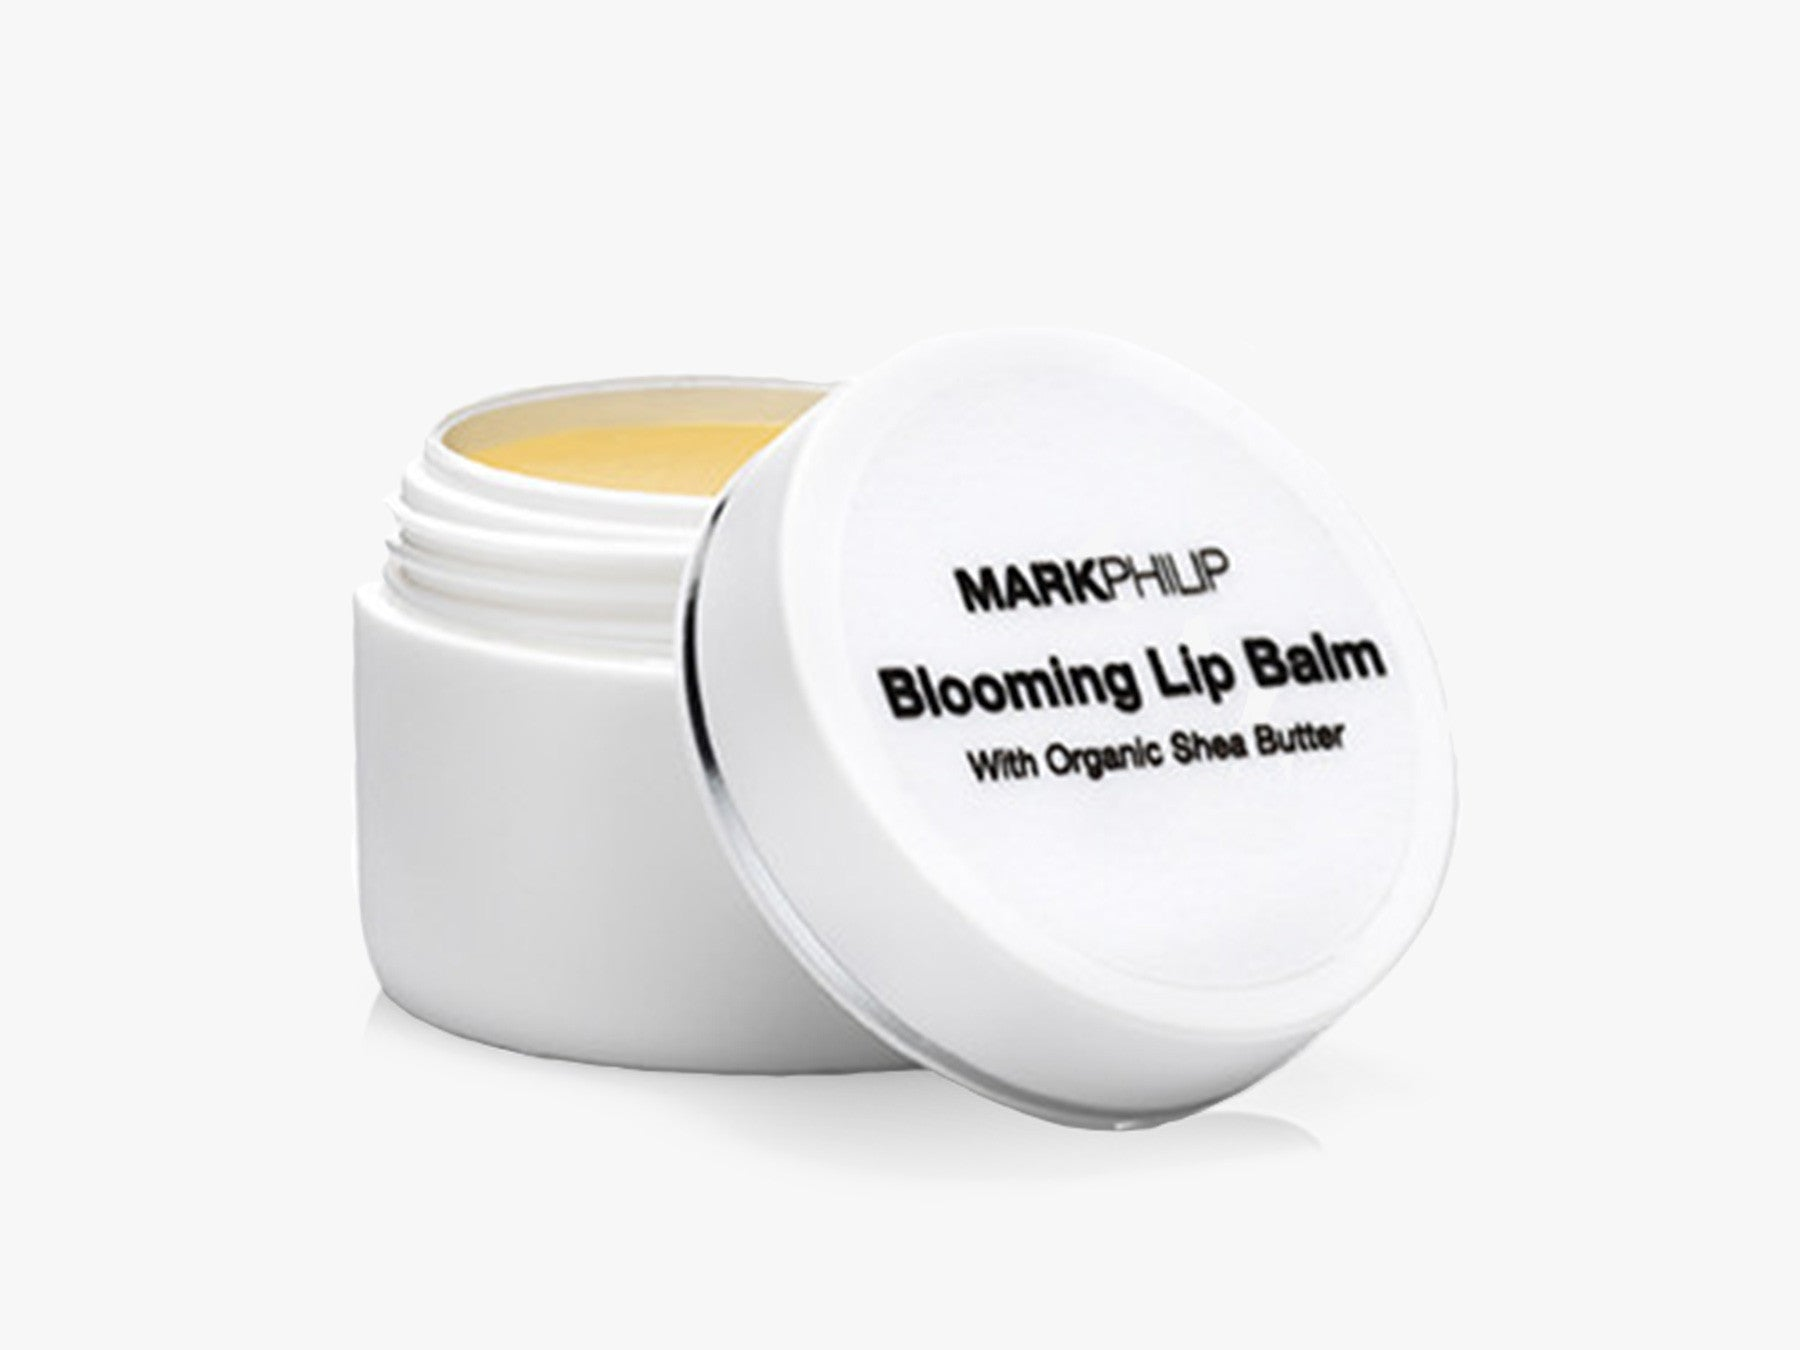 Blooming Lip Balm fra Mark Philip